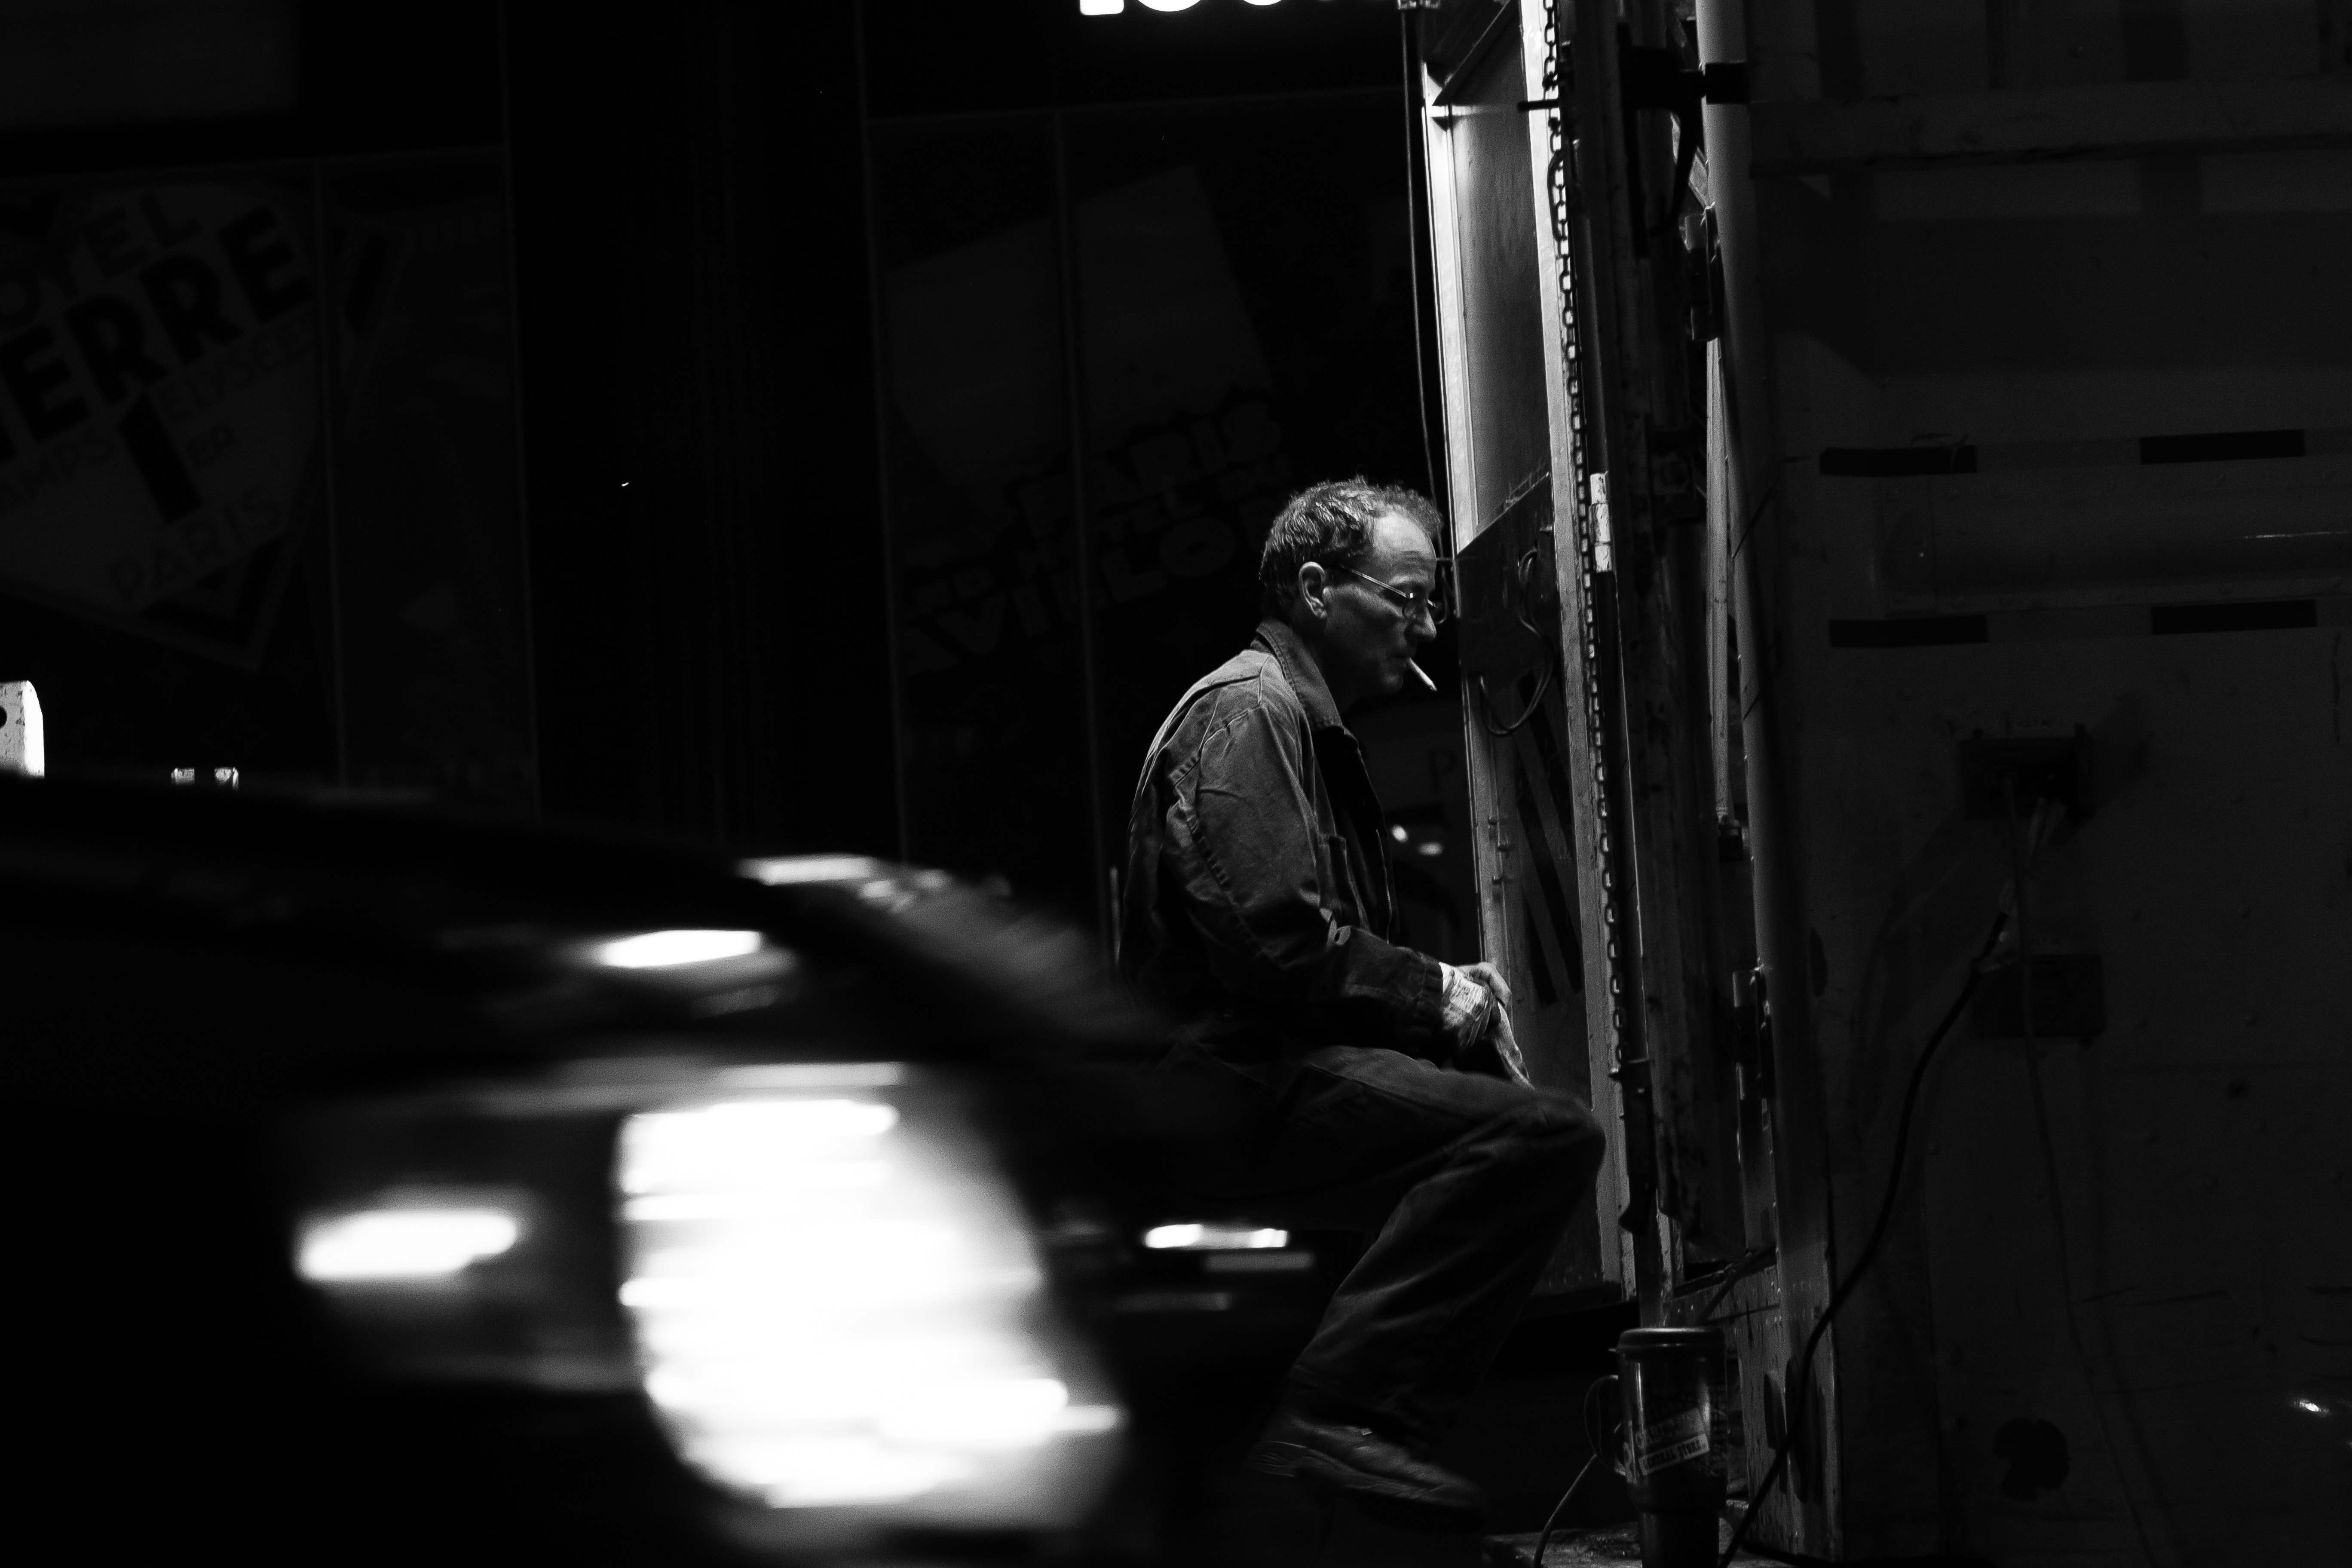 A man in black-and-white sits operating a machine against a blurry background